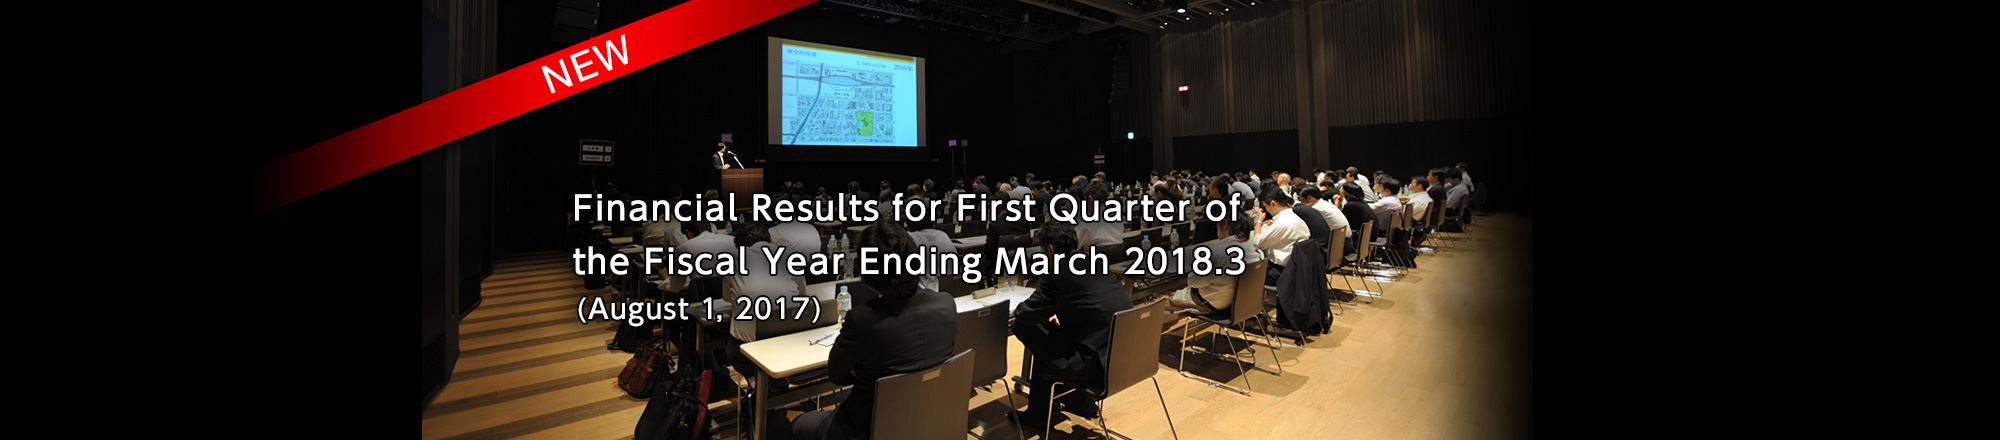 Financial Results for First Quarter of the Fiscal Year Ending March 2018.3 (August 1, 2017)